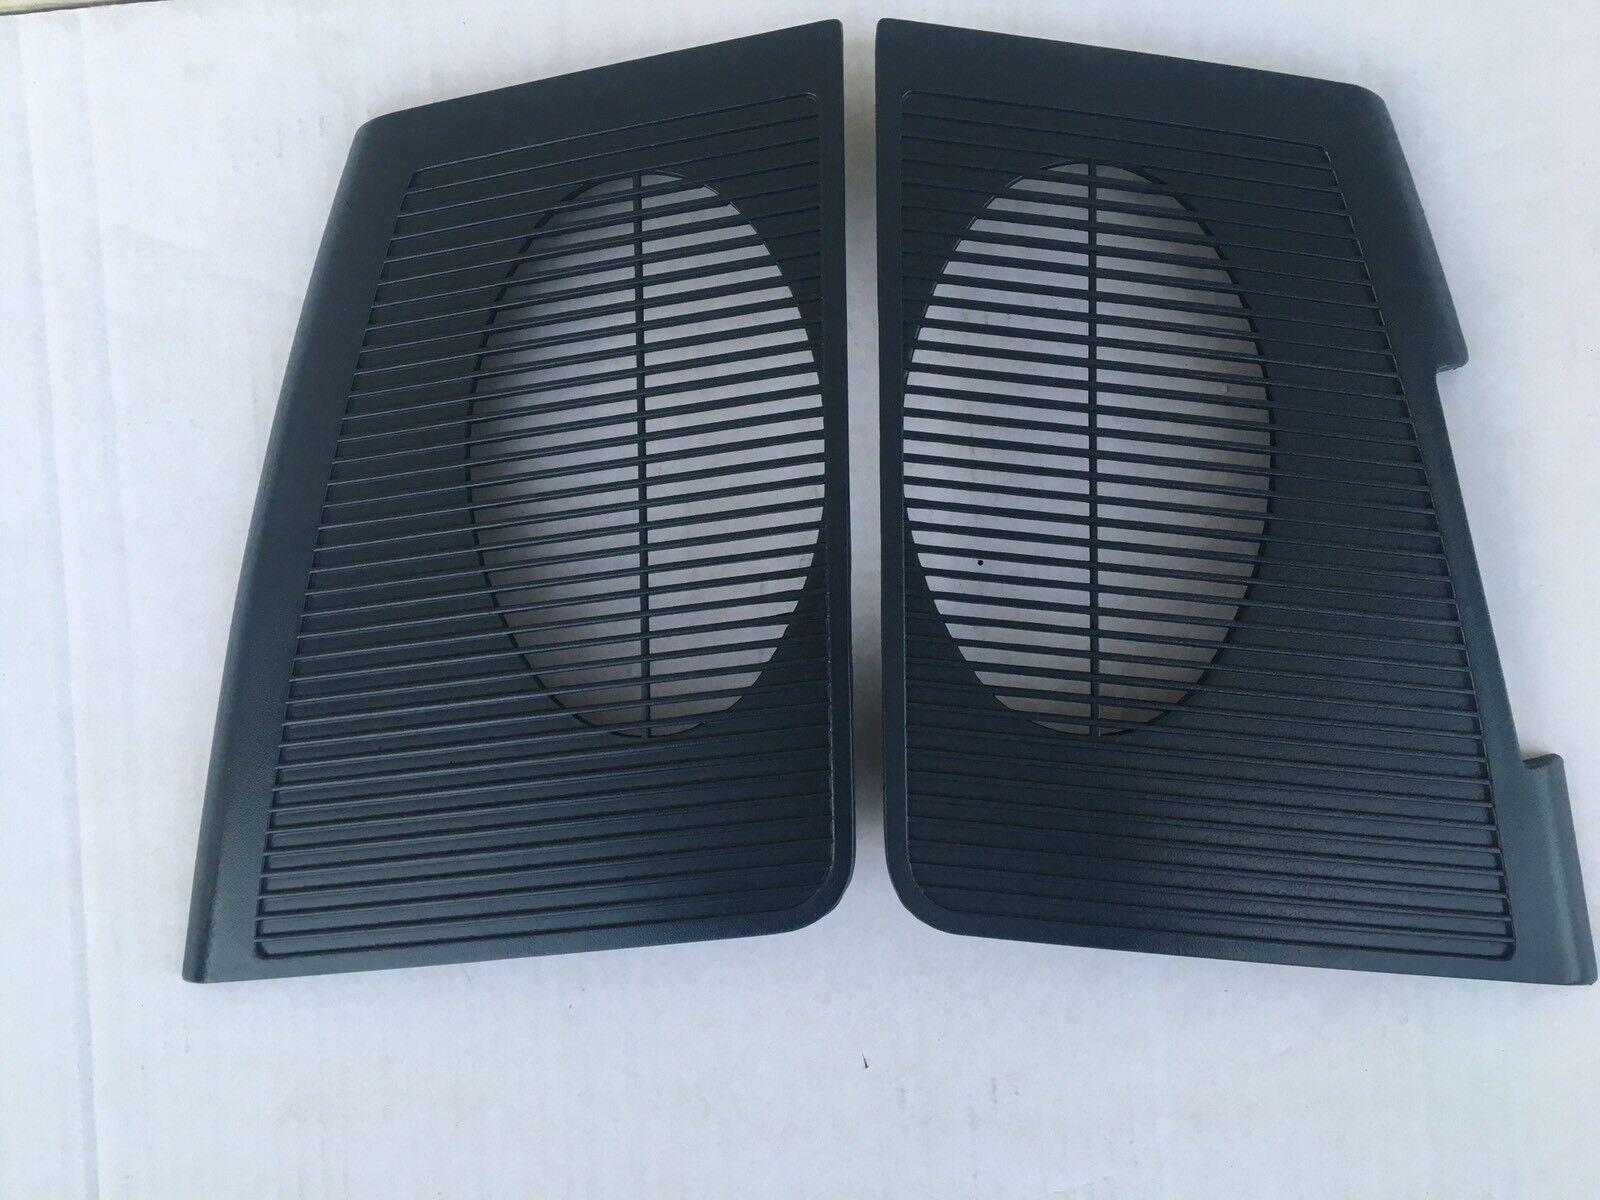 1988-94 Chevy / GMC Truck suburban blazer Navy Blue speaker covers 1 of 3  See More